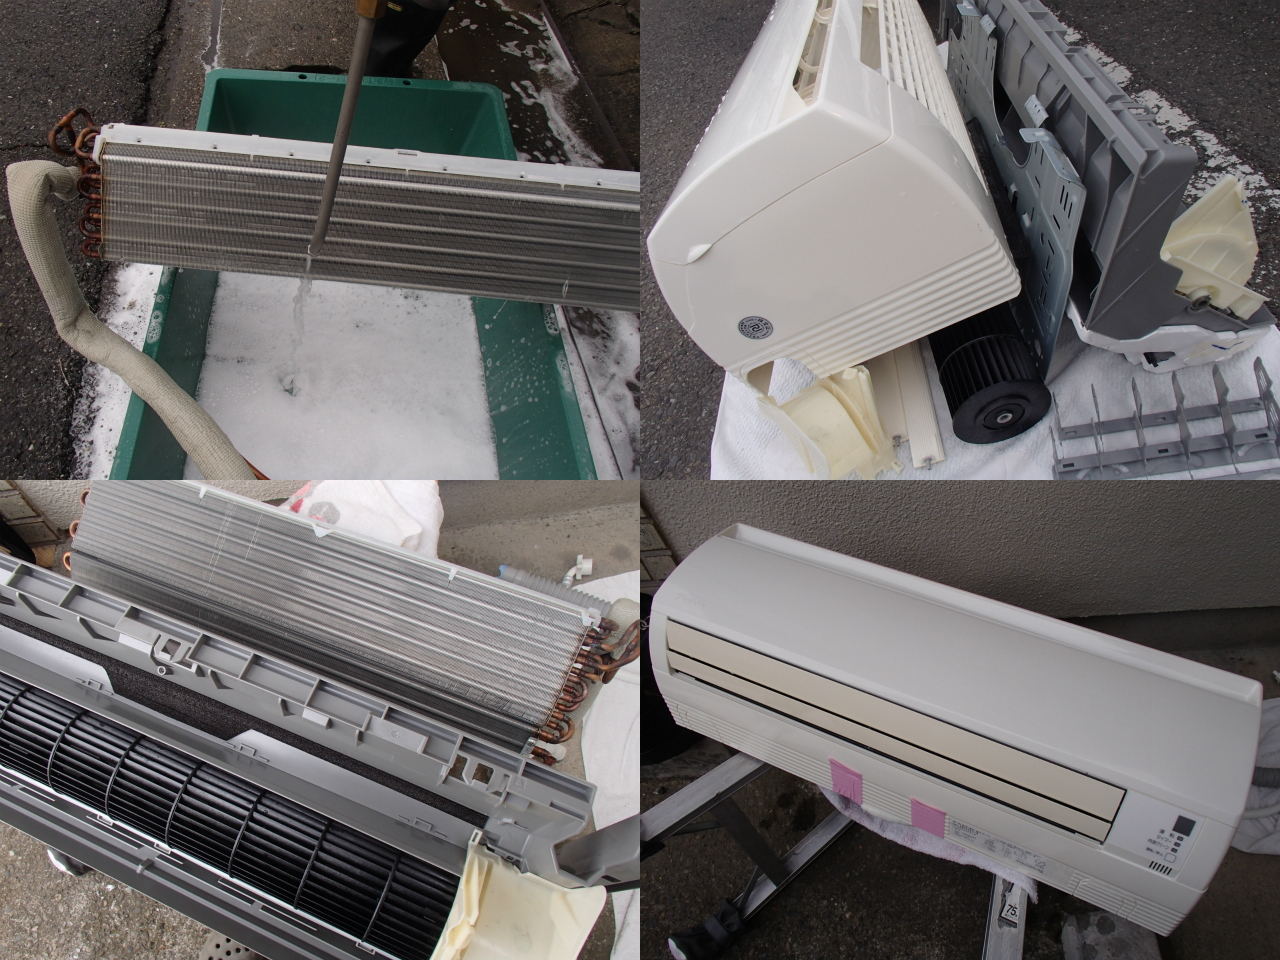 http://ajras.net/images/120329-aircon.jpg